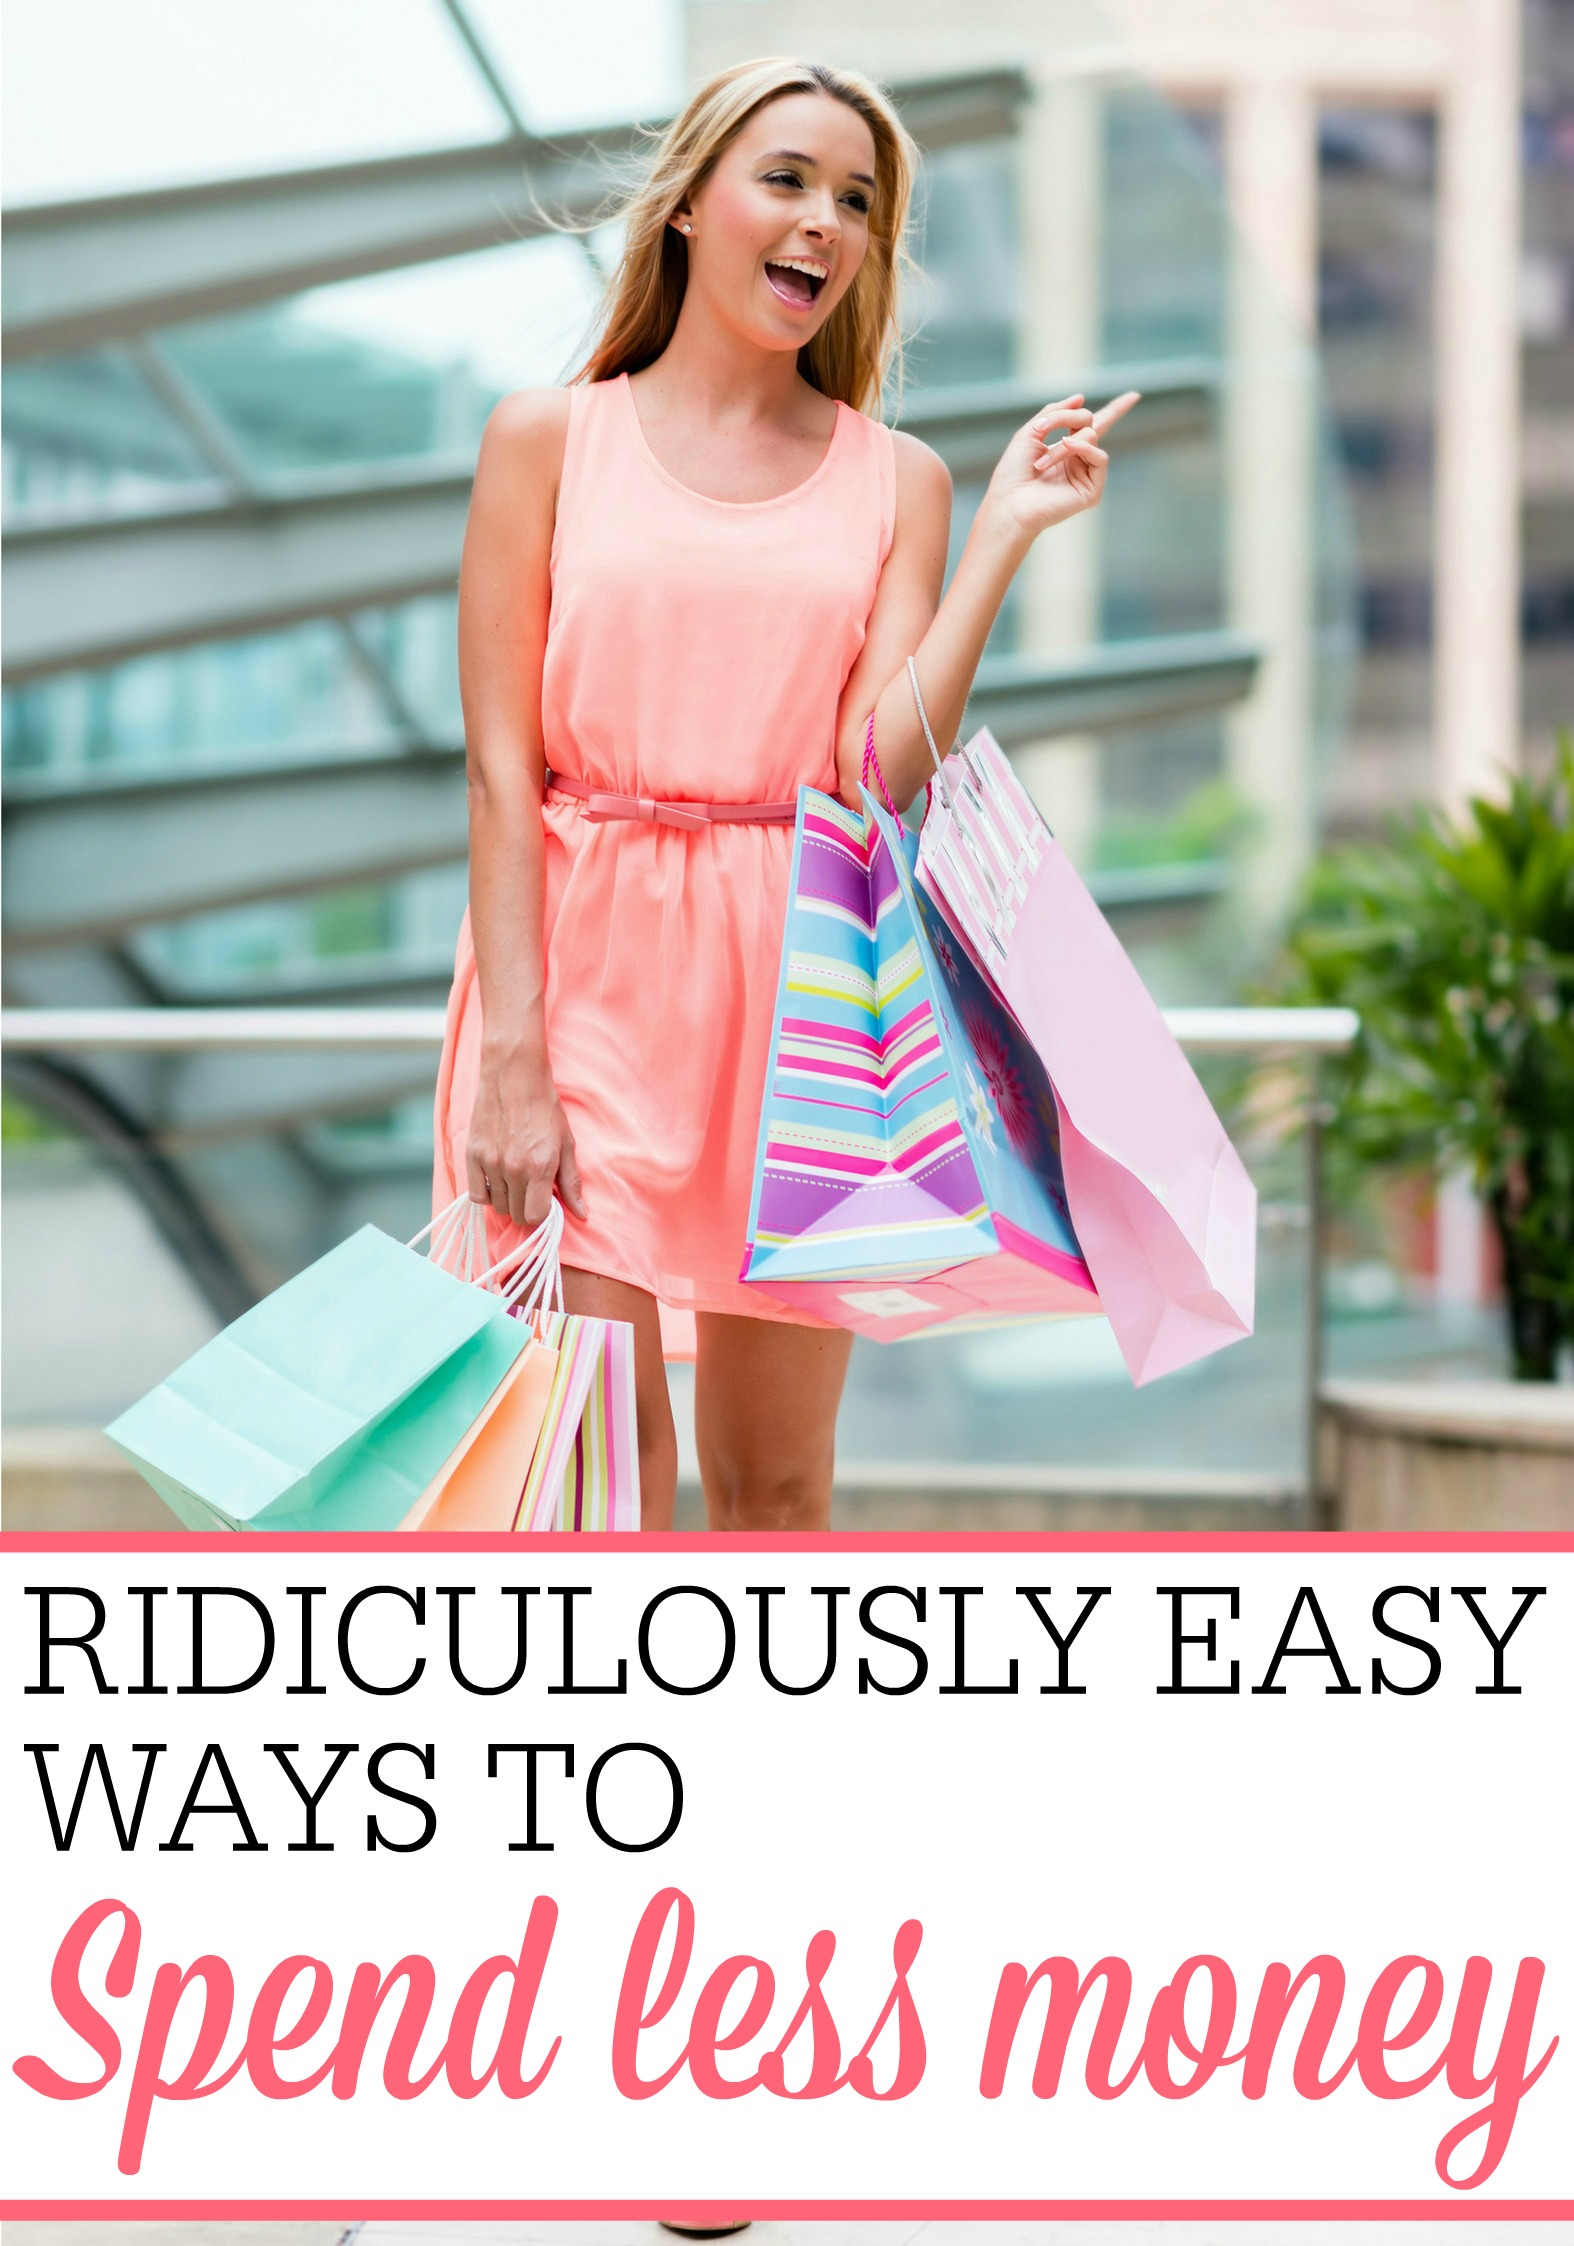 ridiculously easy ways to spend less money